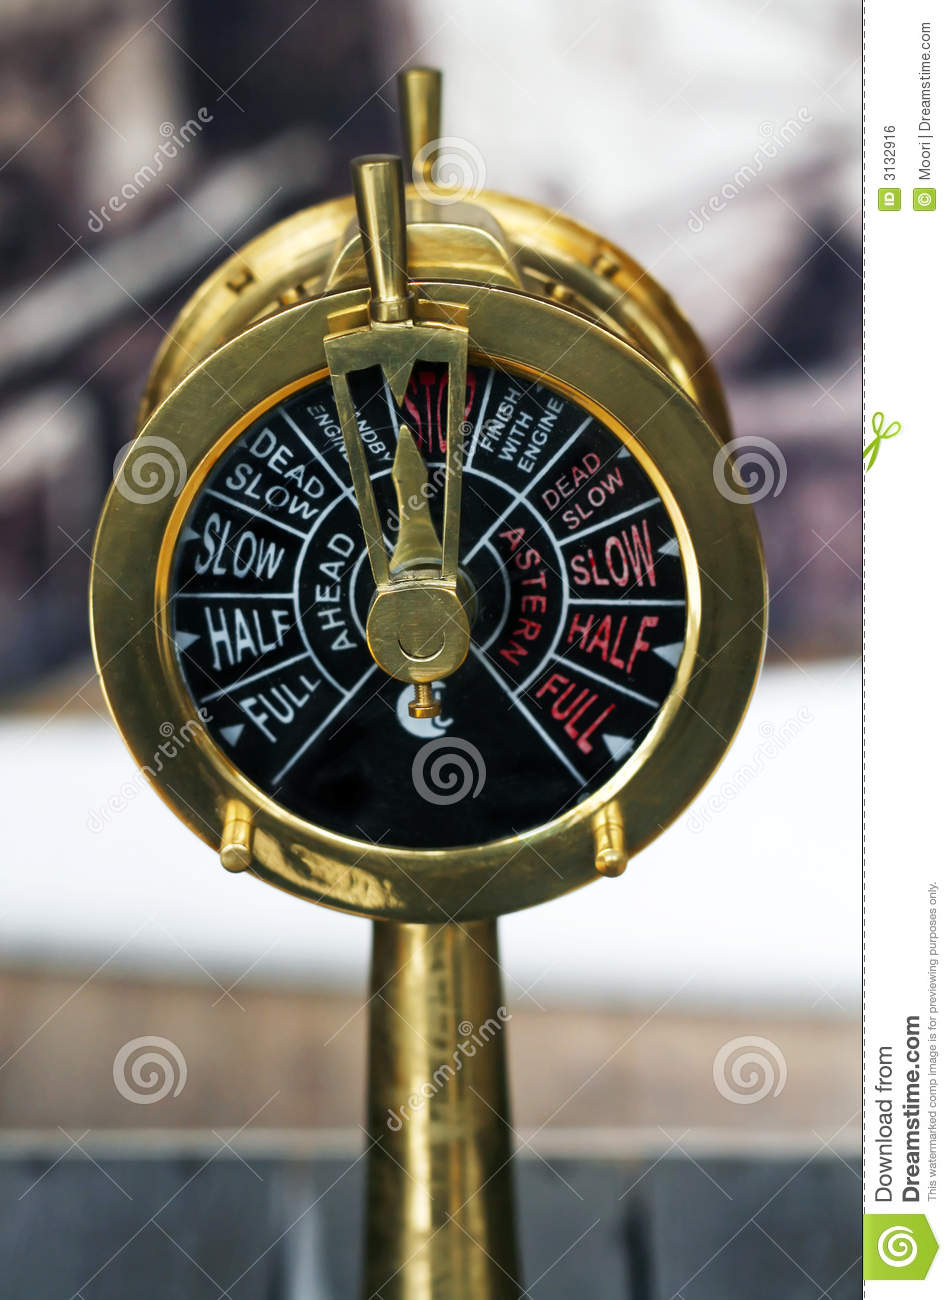 Old Throttle Royalty Free Stock Image - Image: 3132916